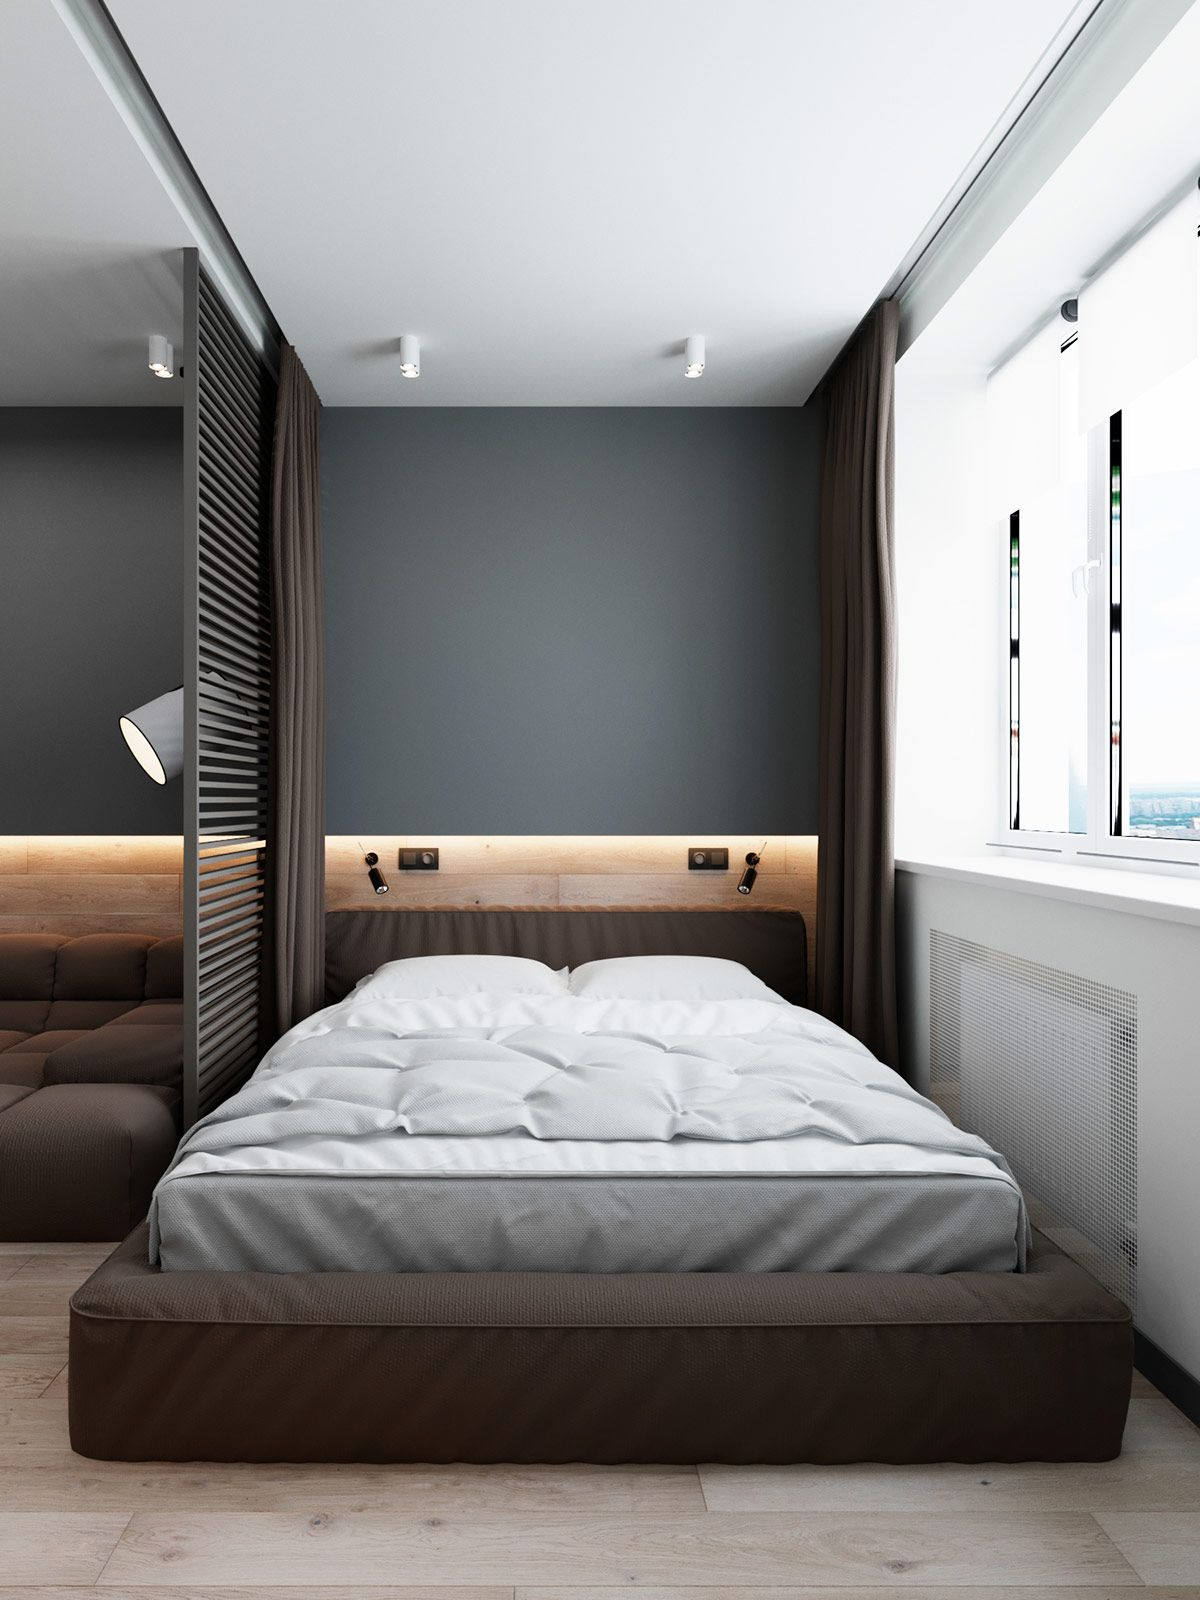 3 Luxury Apartments With Open Plan Bedroom Ideas Bedroom Interior Luxurious Bedrooms Apartment Interior